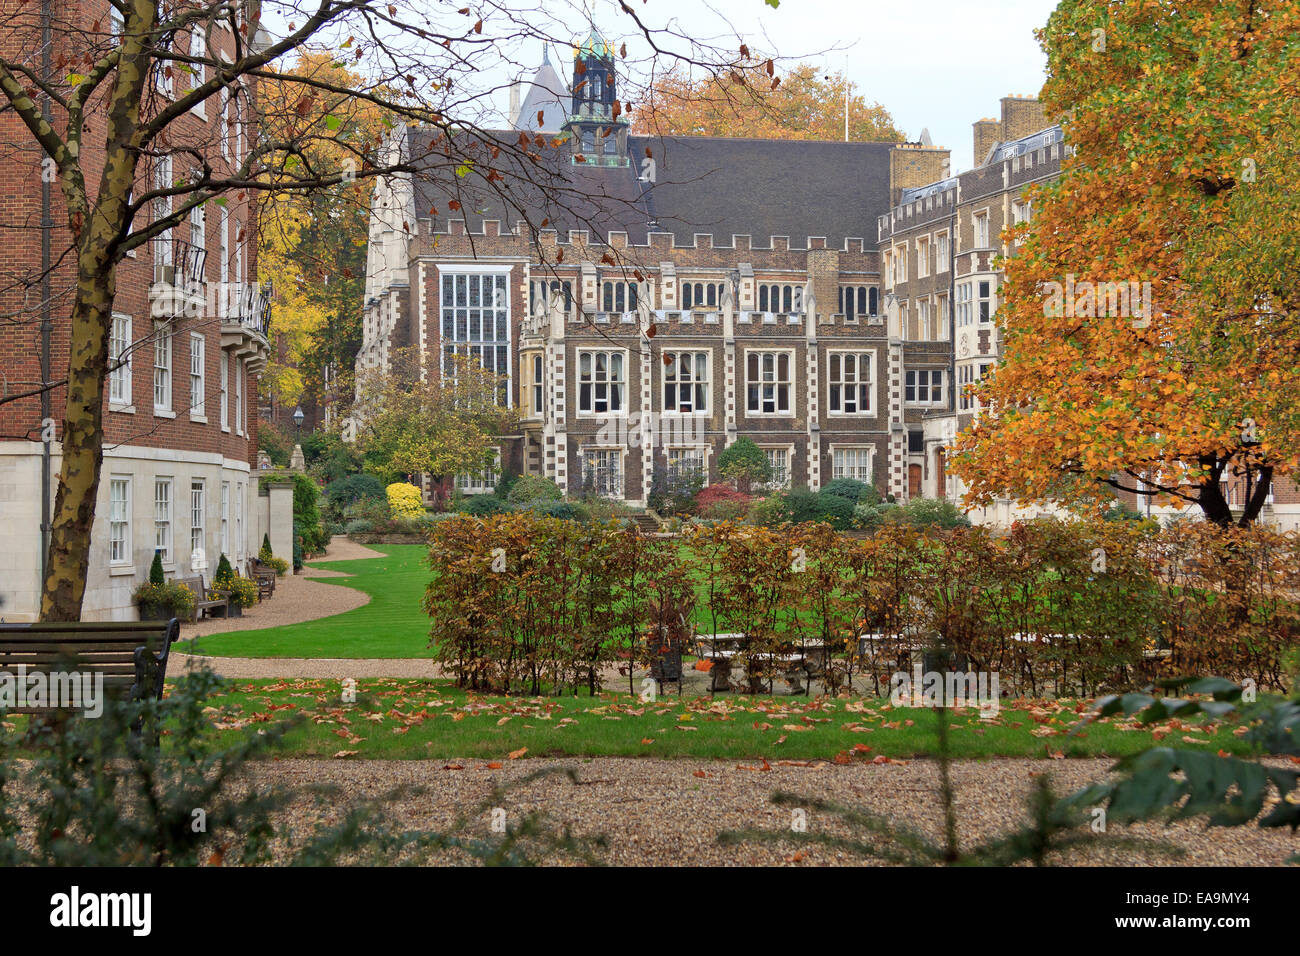 Middle Temple - part of 'The Temple' - home of two of the four Inns of Court of the English legal system. - Stock Image